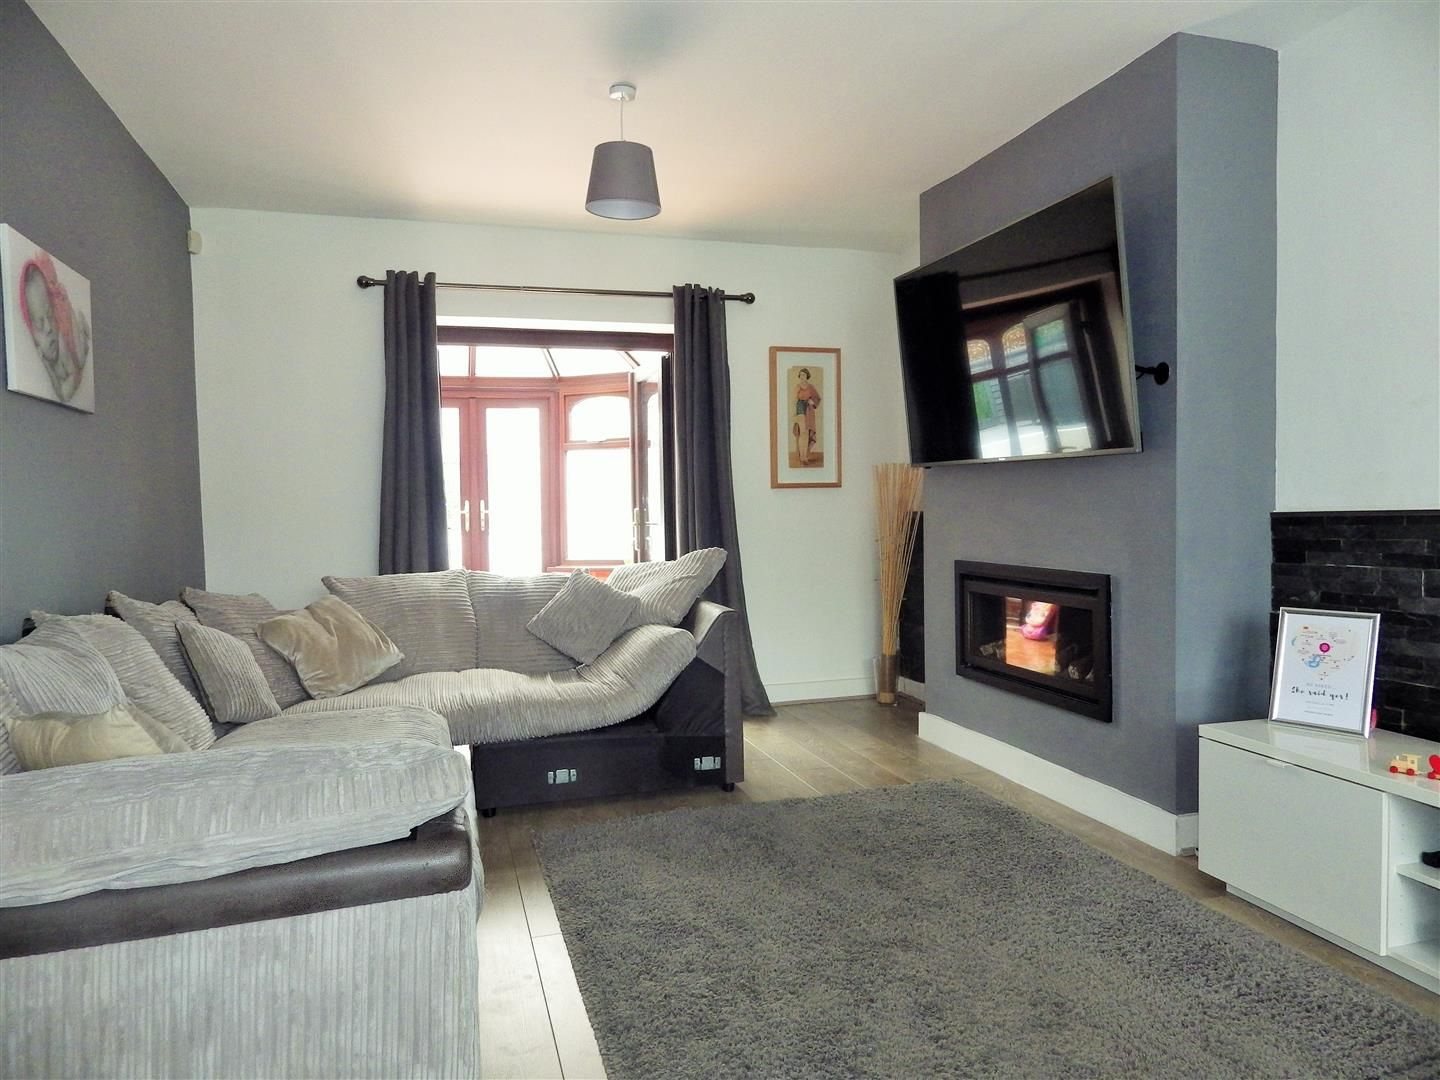 3 bed semi-detached for sale in Hasbury 4